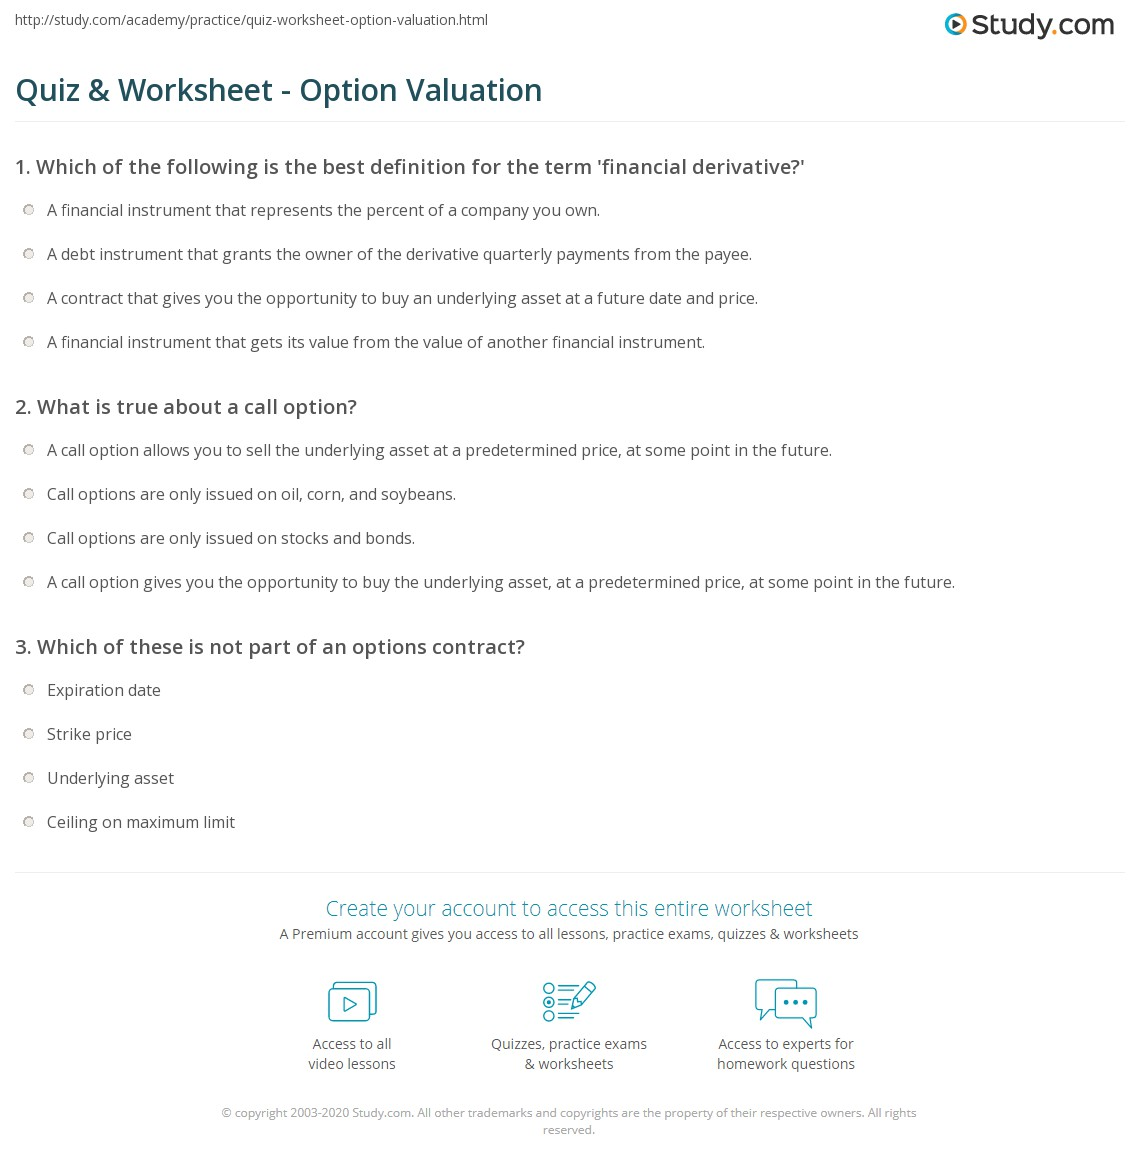 quiz & worksheet - option valuation | study